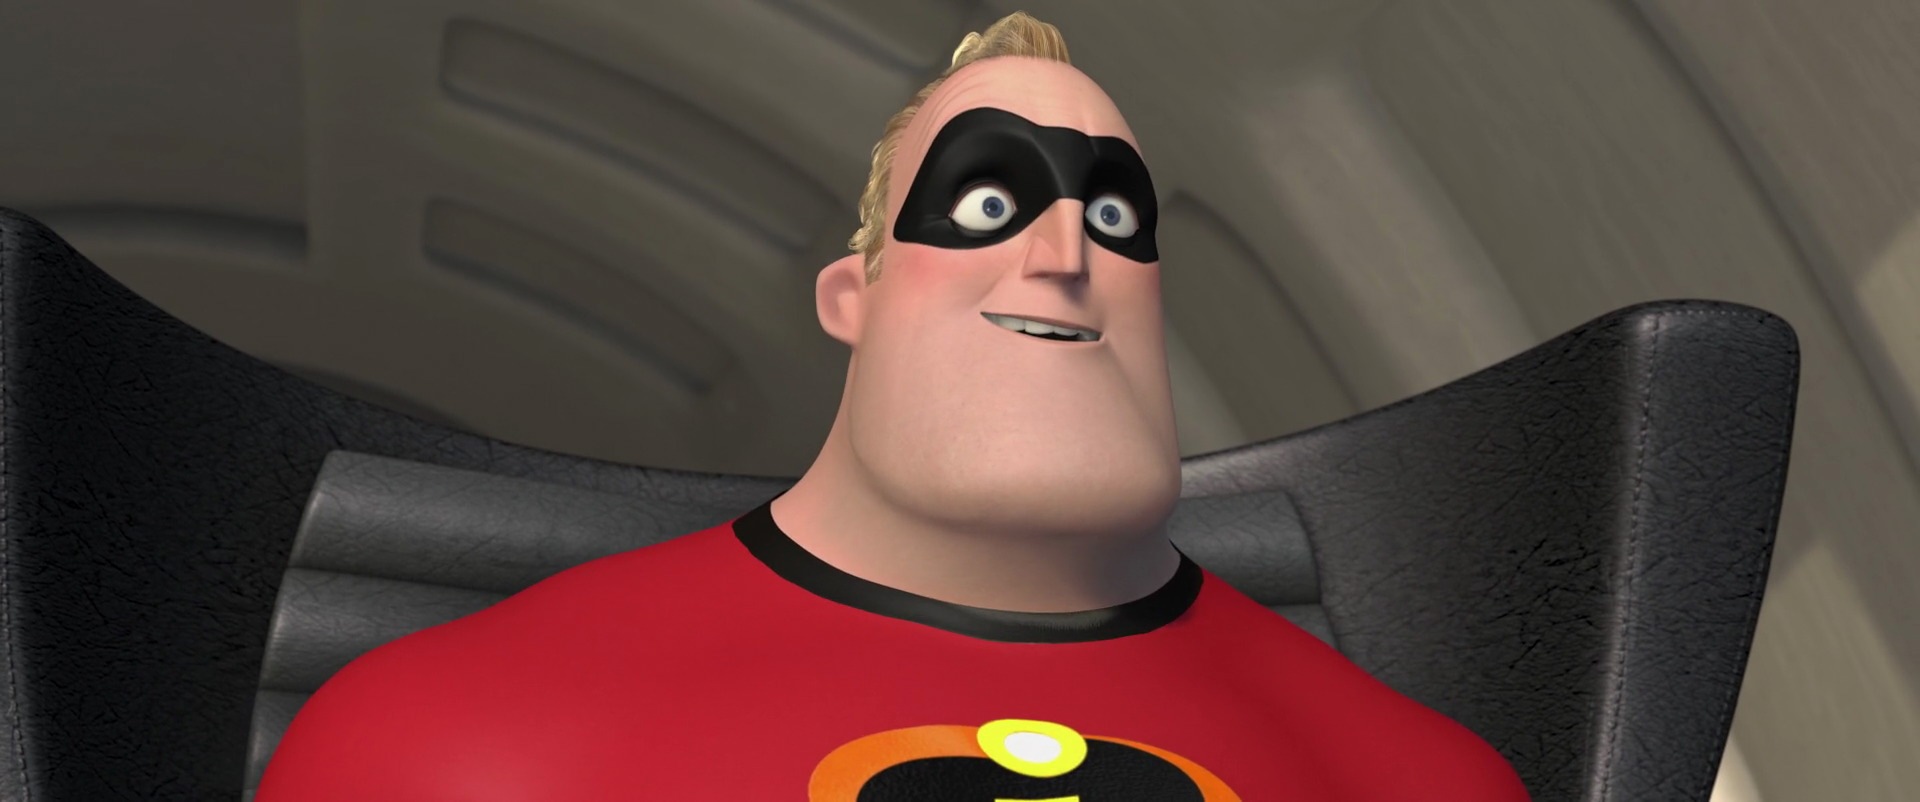 monsieur robert parr pixar disney personnage character indestructibles incredibles